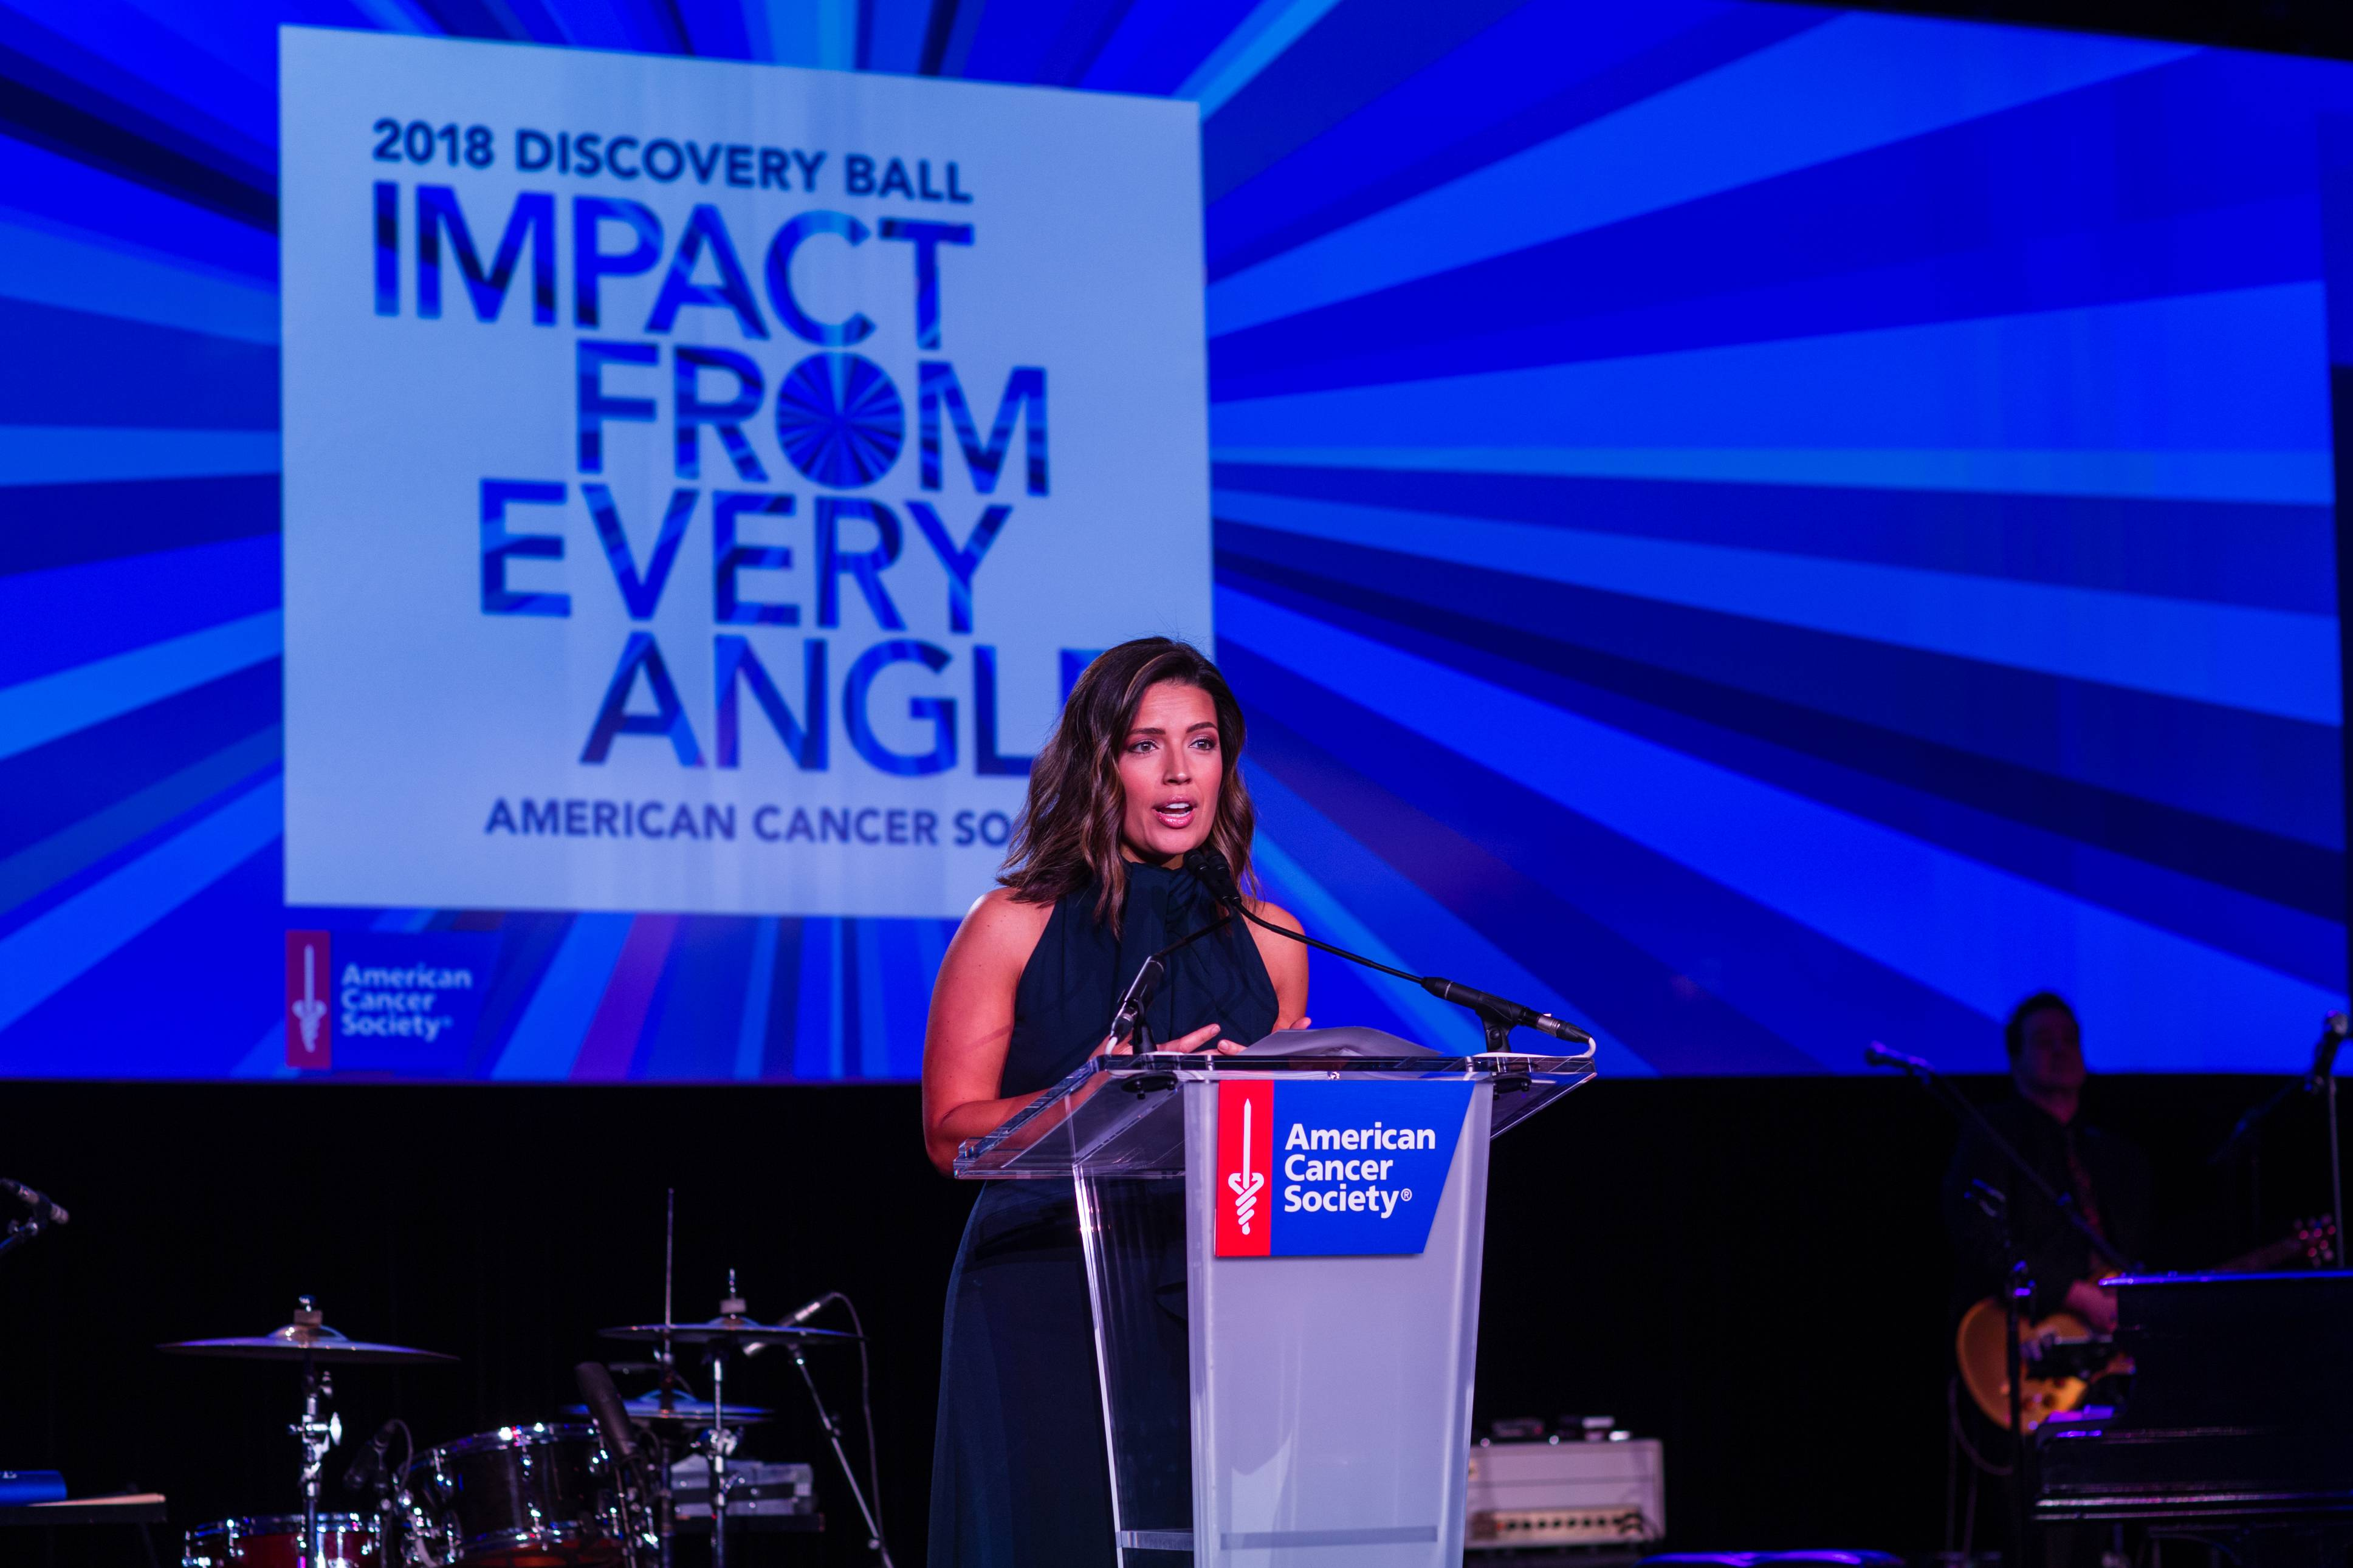 ABC 7's Tanja Babich serves as the emcee for the 2018 Discovery Ball. The ball, now in its 13th year, is set for Saturday, April 27, at the Hilton Chicago.